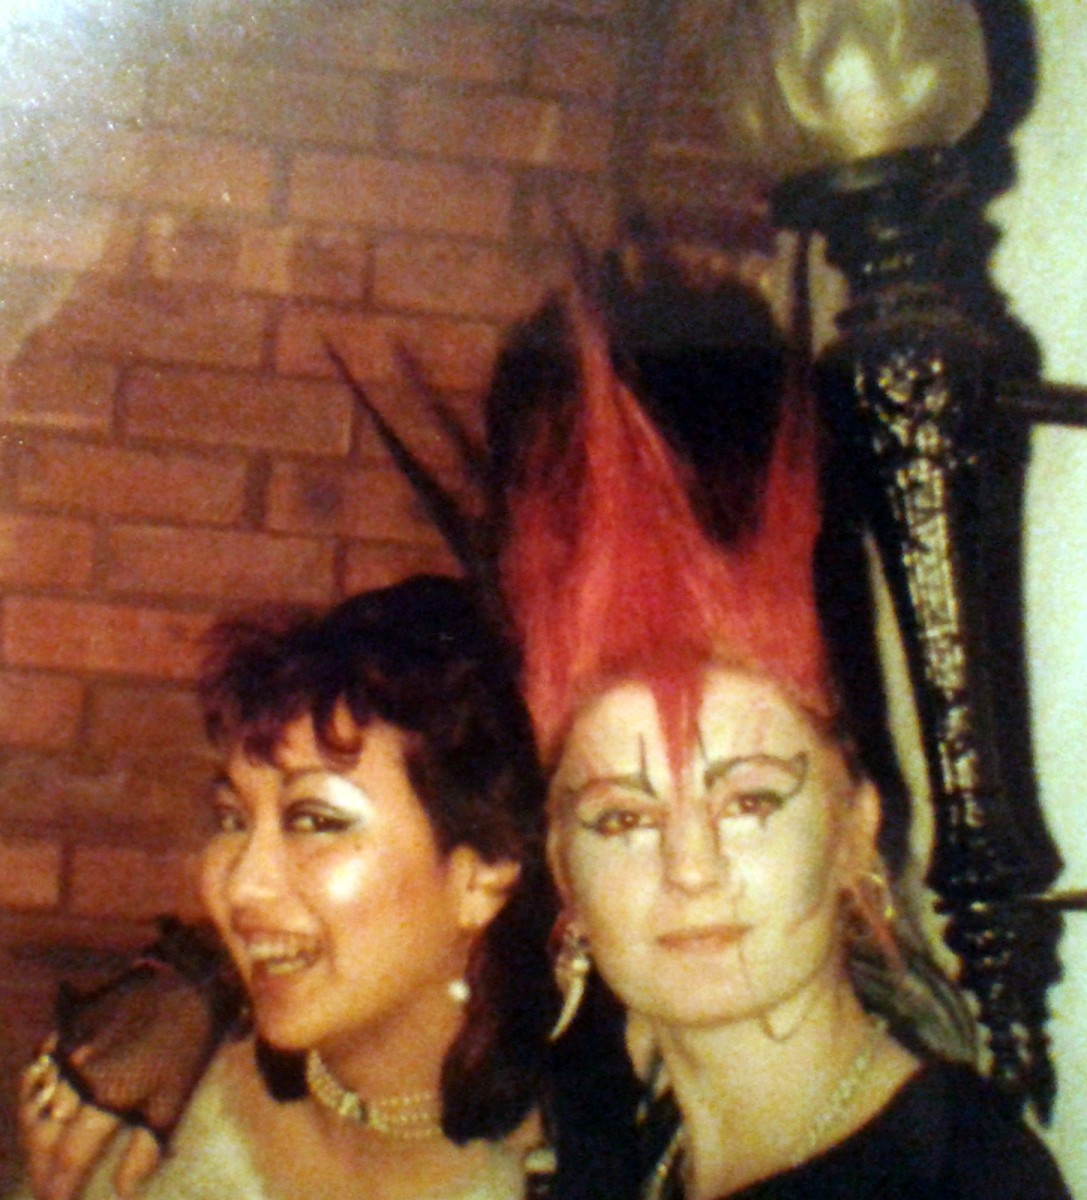 Nila and Boz in the Bierkeller, 1984